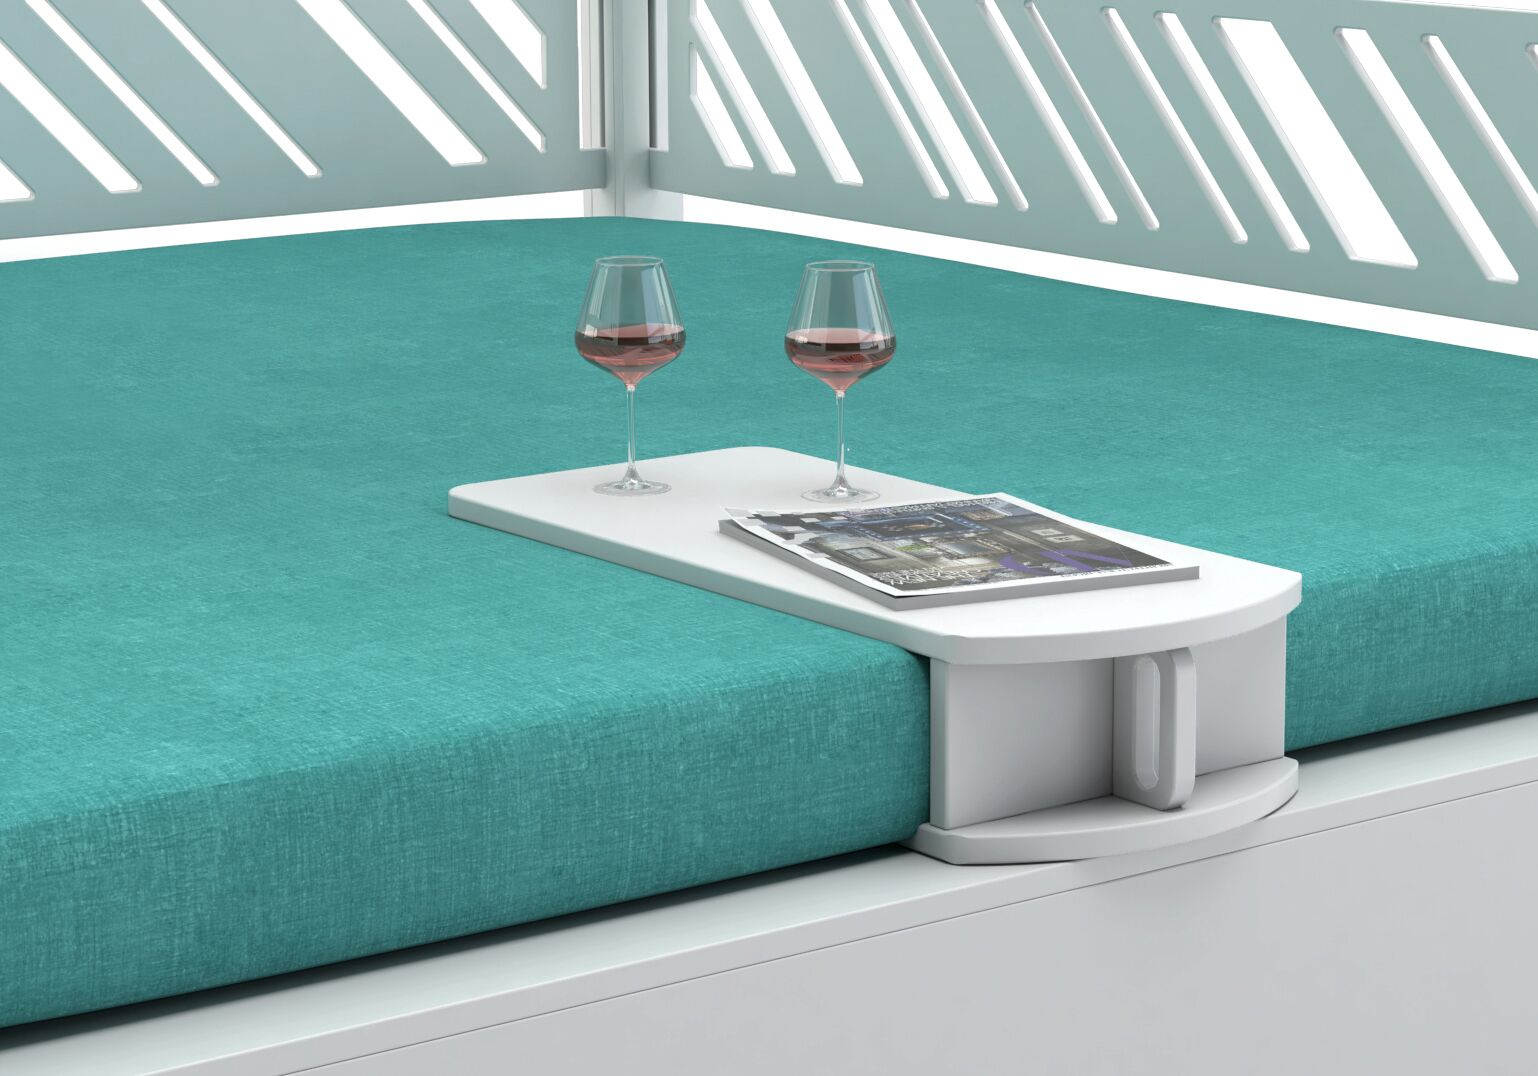 Ledge Lounger Daybed Cocktail Table